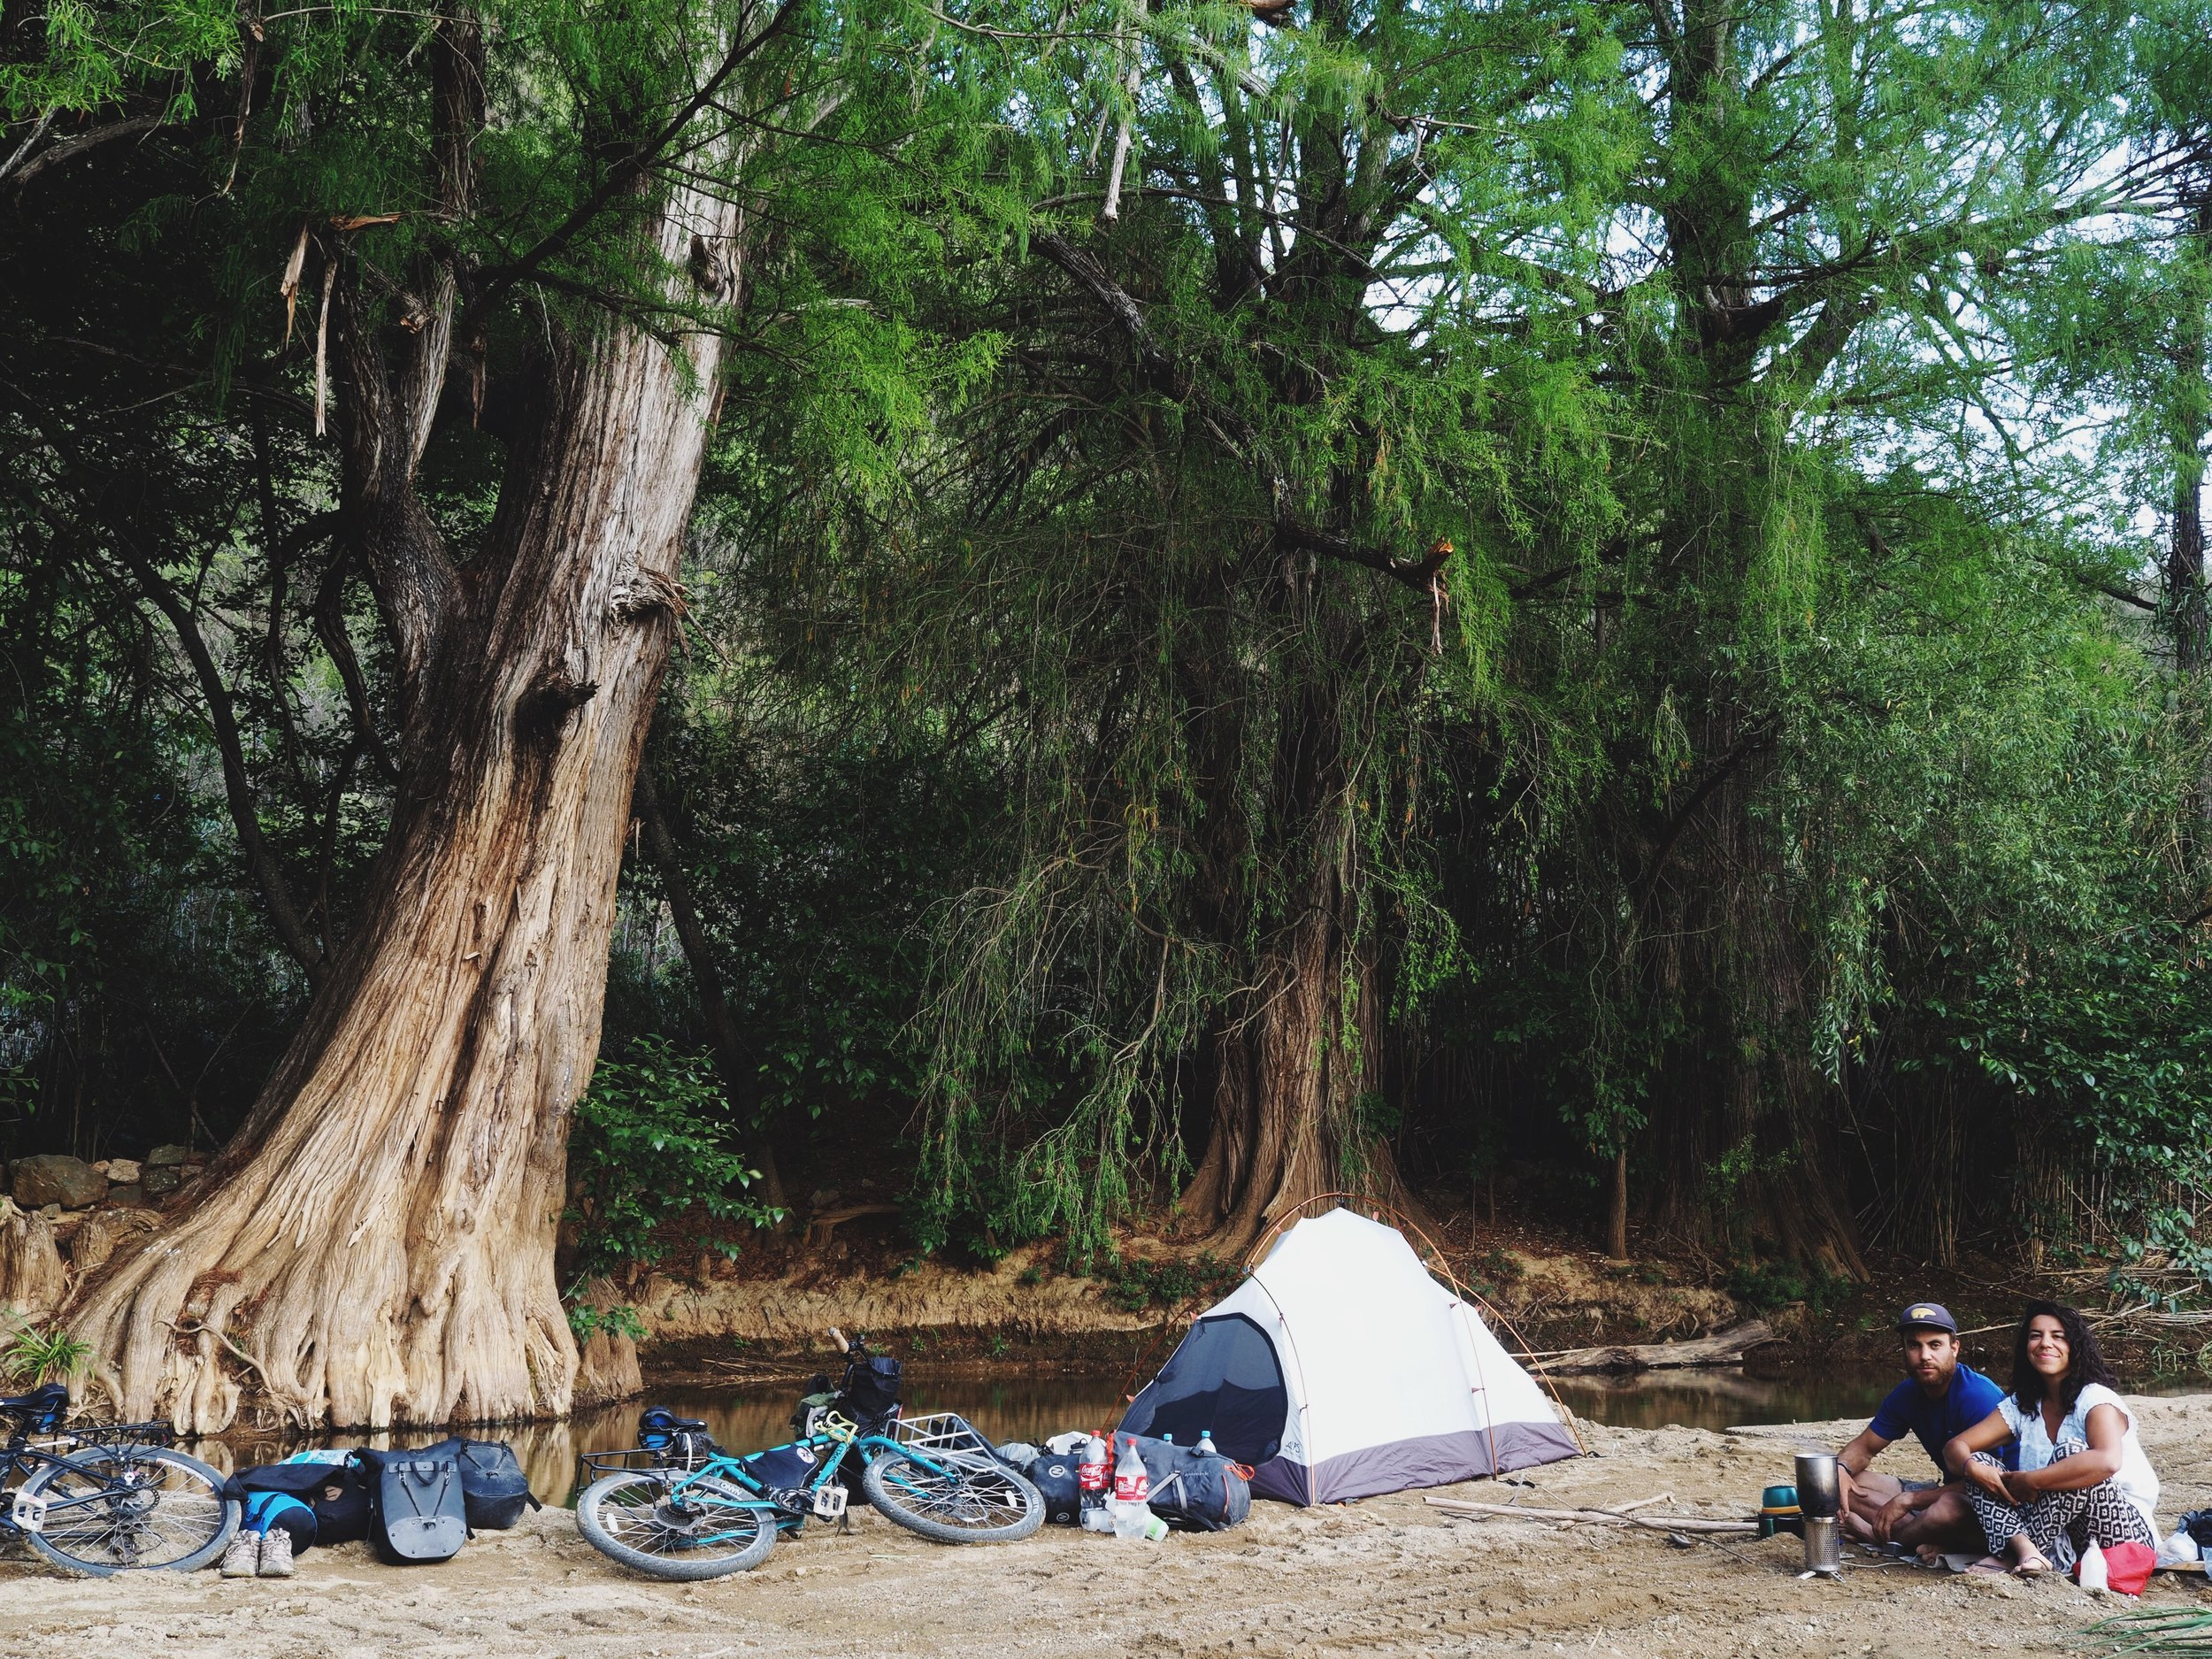 Hands down one of the best campsites to date!